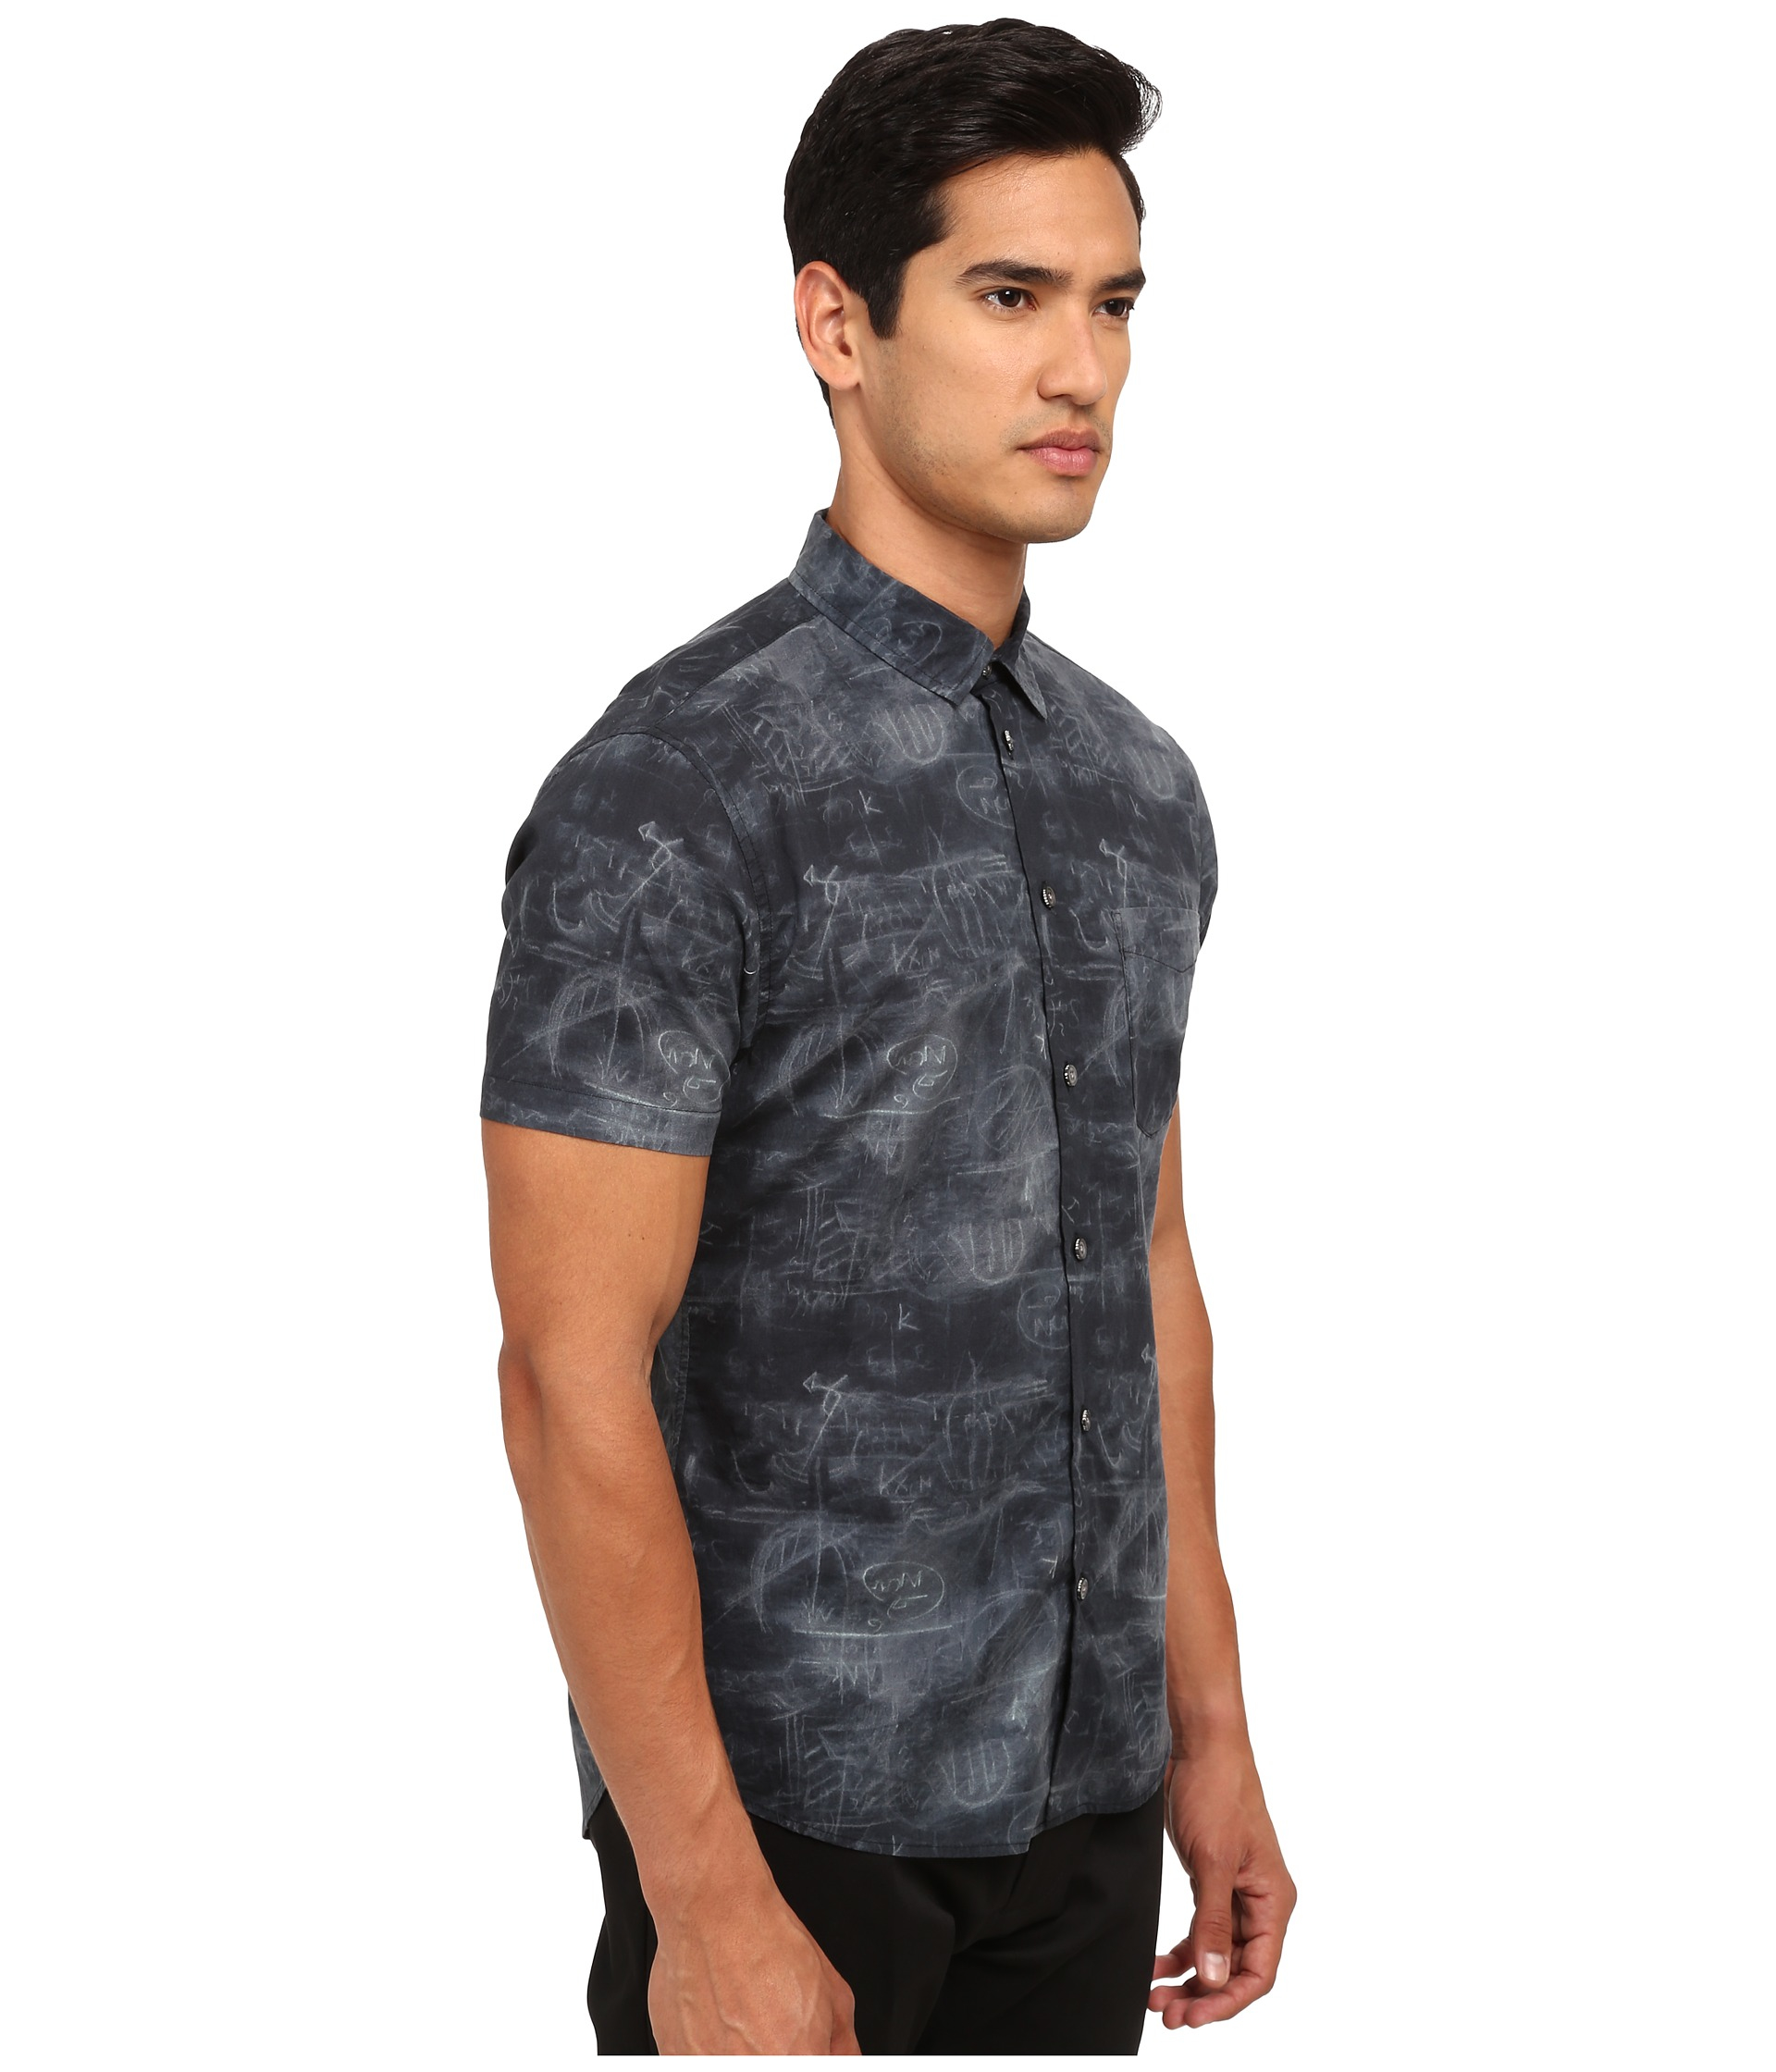 Lyst - Marc by marc jacobs Chalkboard Shirt in Black for Men